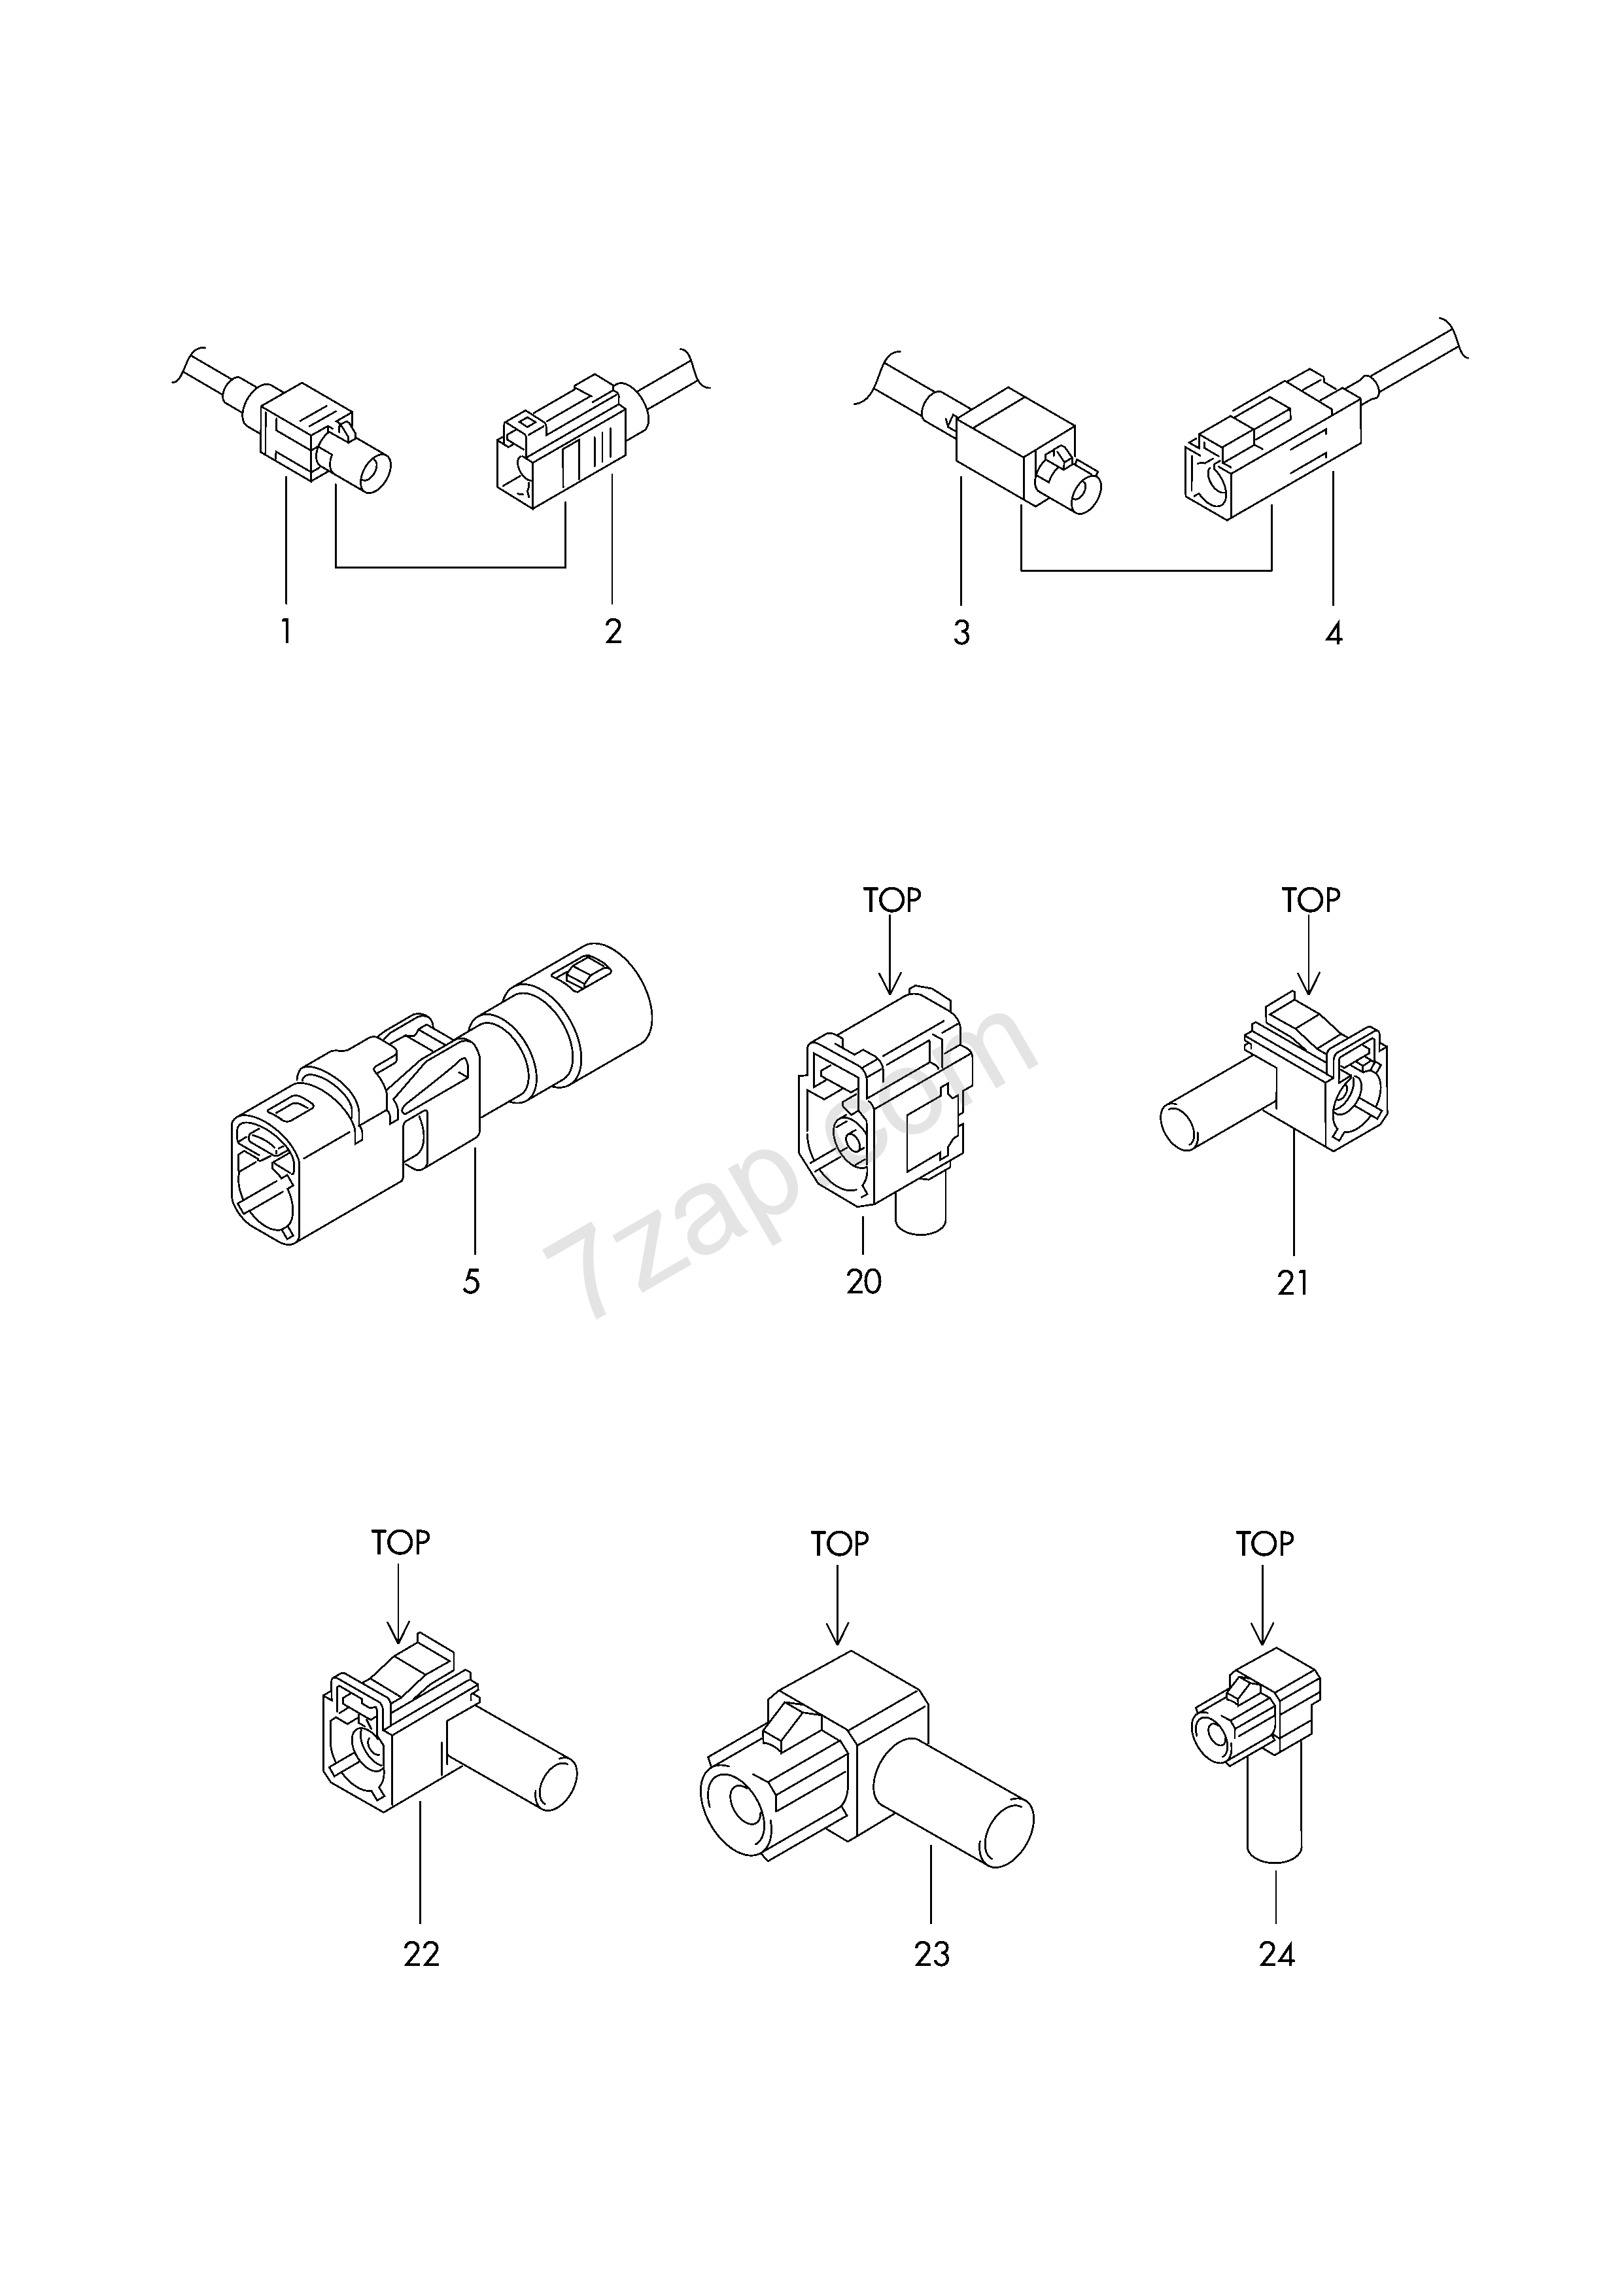 connector housing for aerial wire; see parts bull... Elekt.Verbind ...